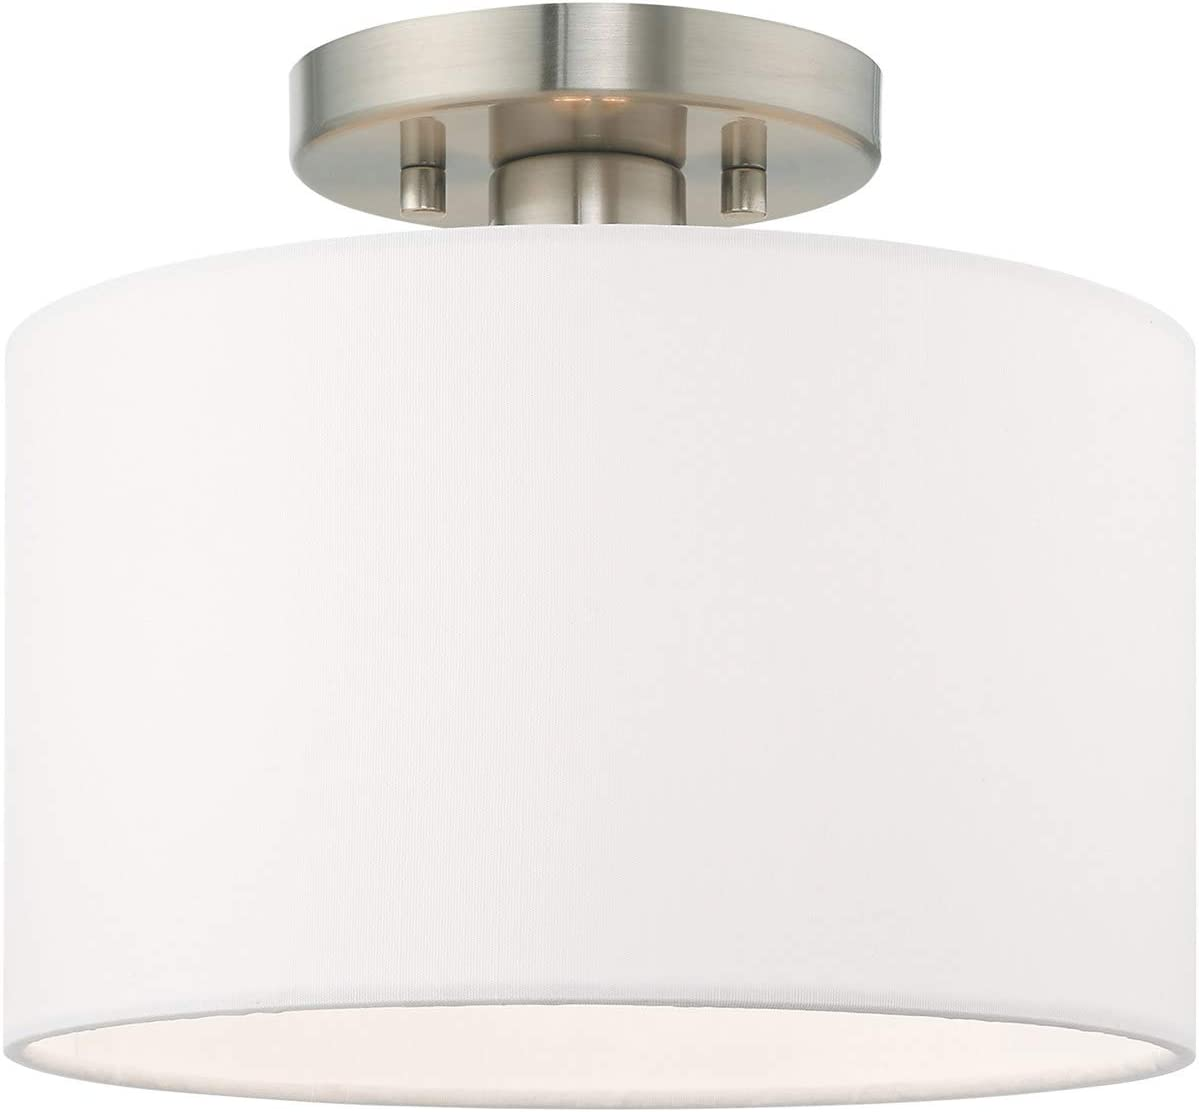 Livex Inventory cleanup selling sale Lighting 41095-91 1 Lt Ceiling Mount Brushed Nickel Max 41% OFF